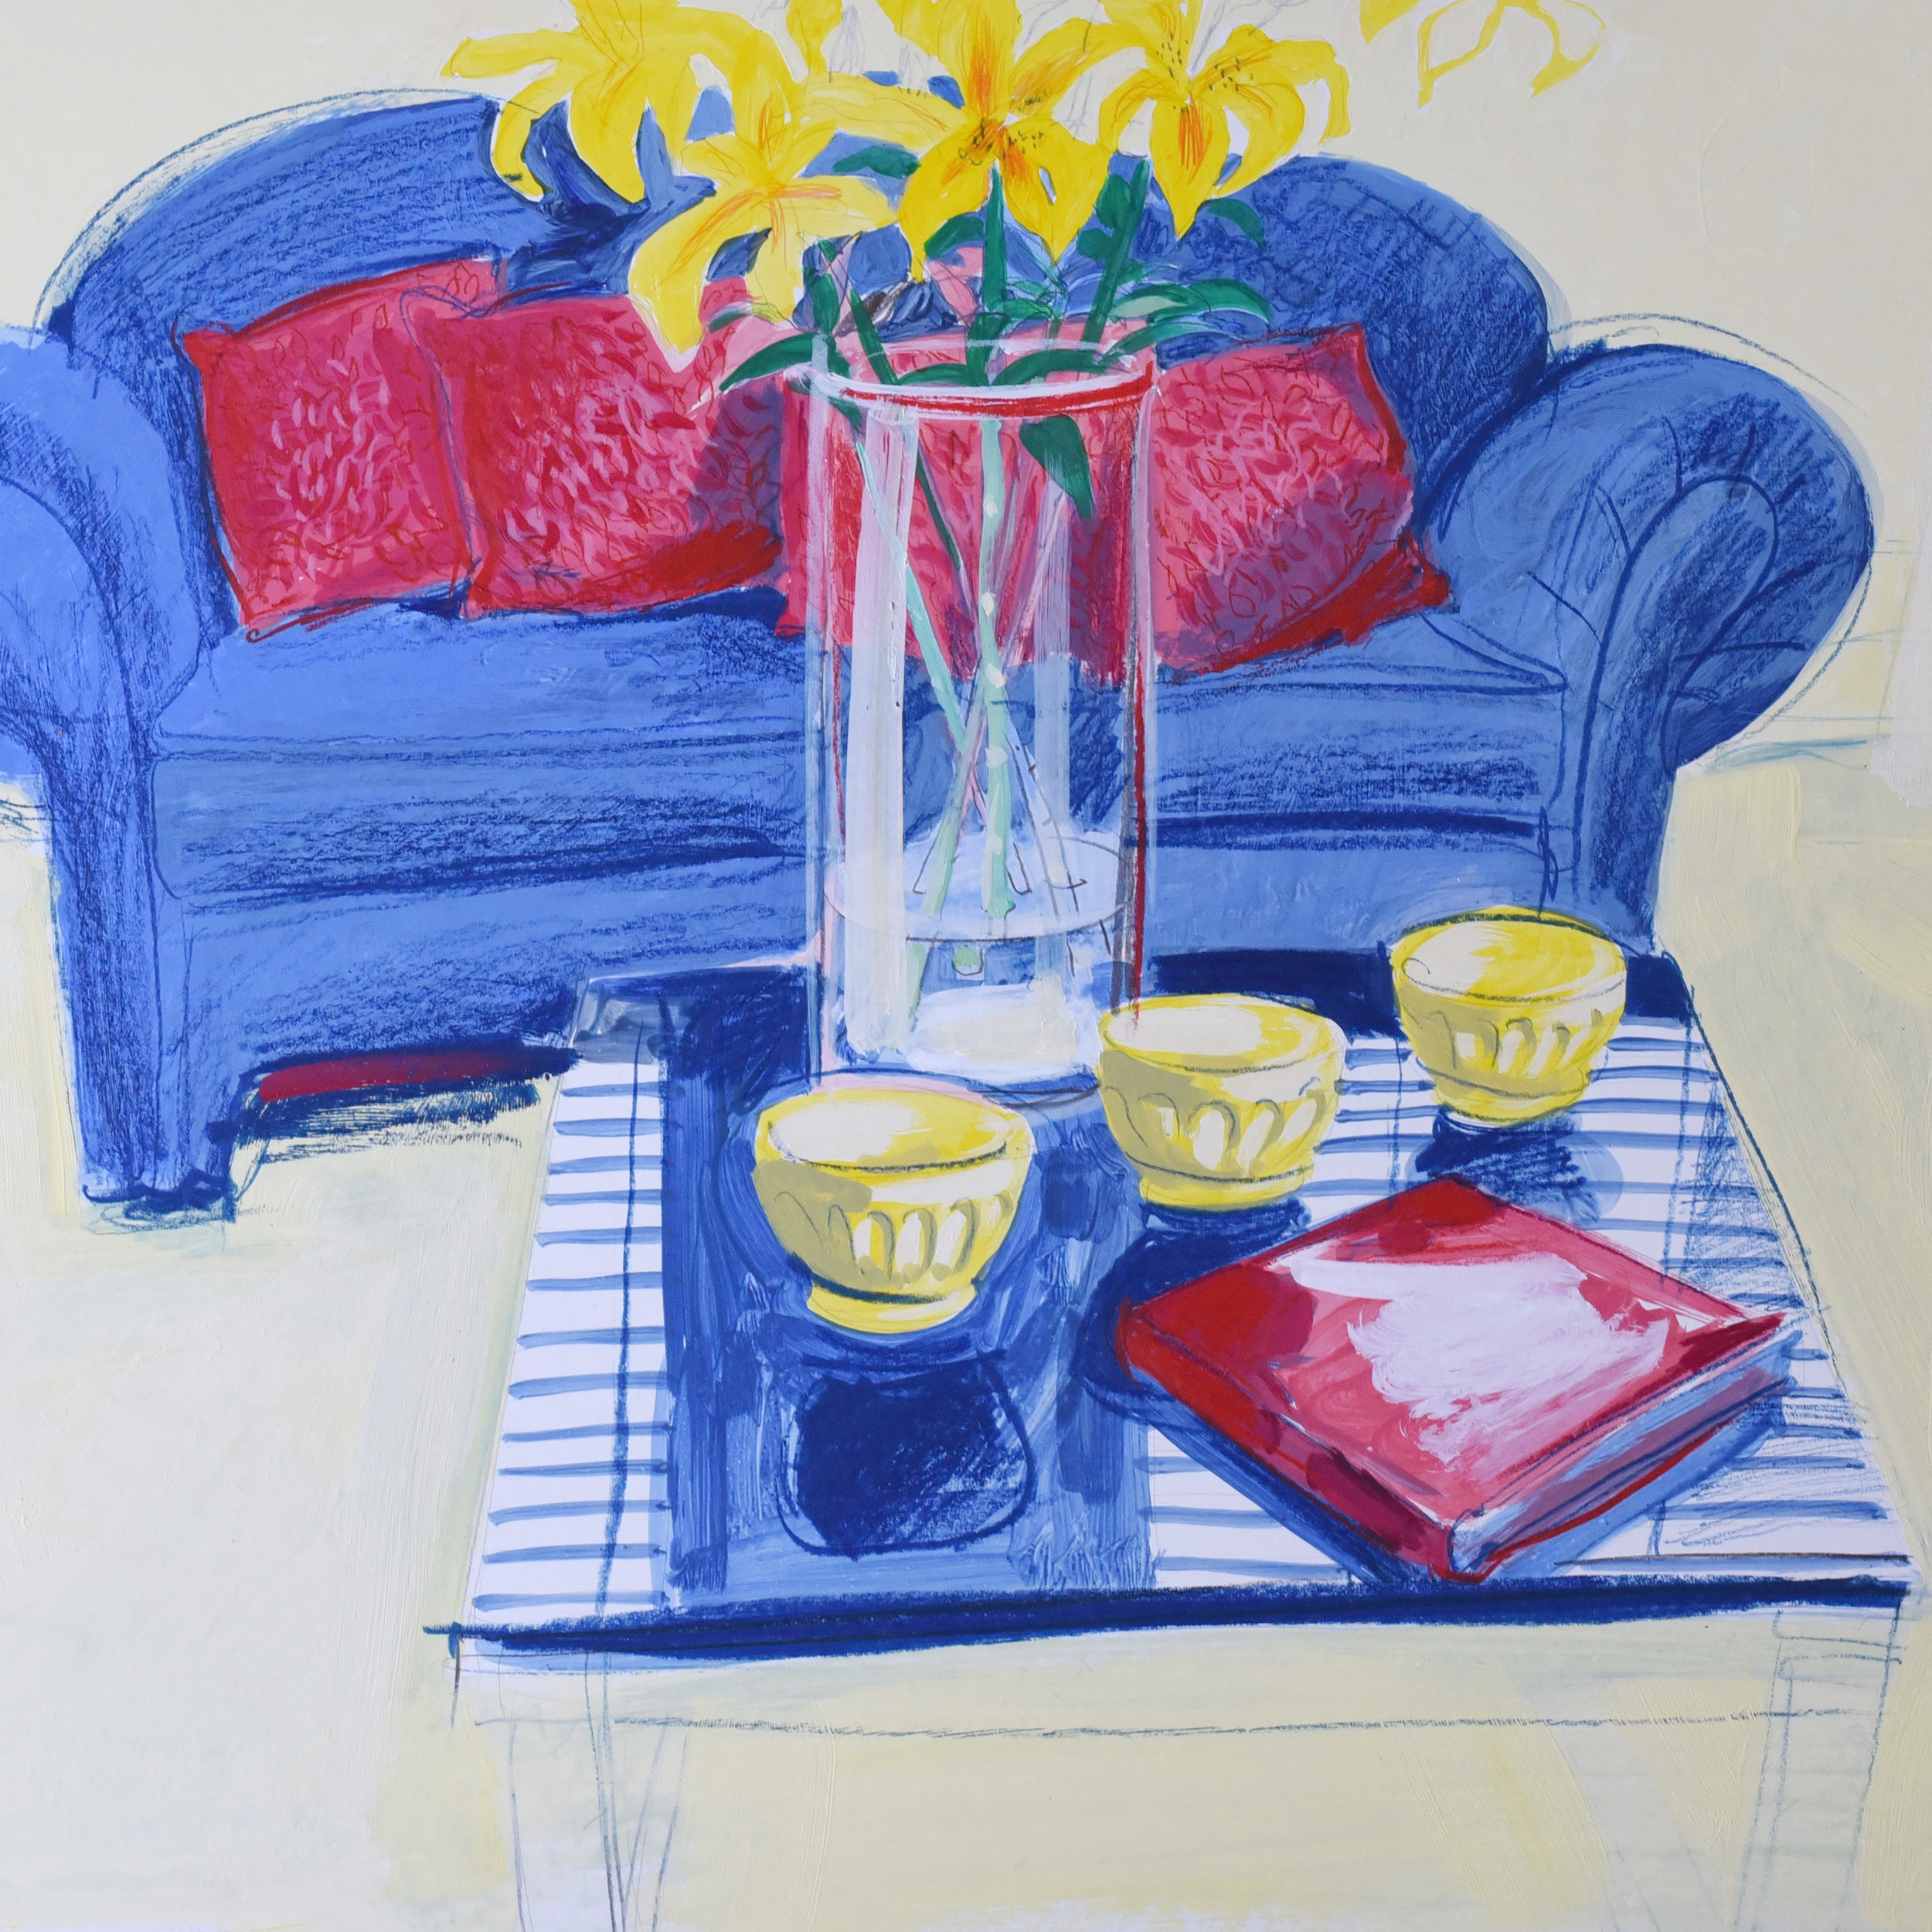 StillLife_Sofa.jpg